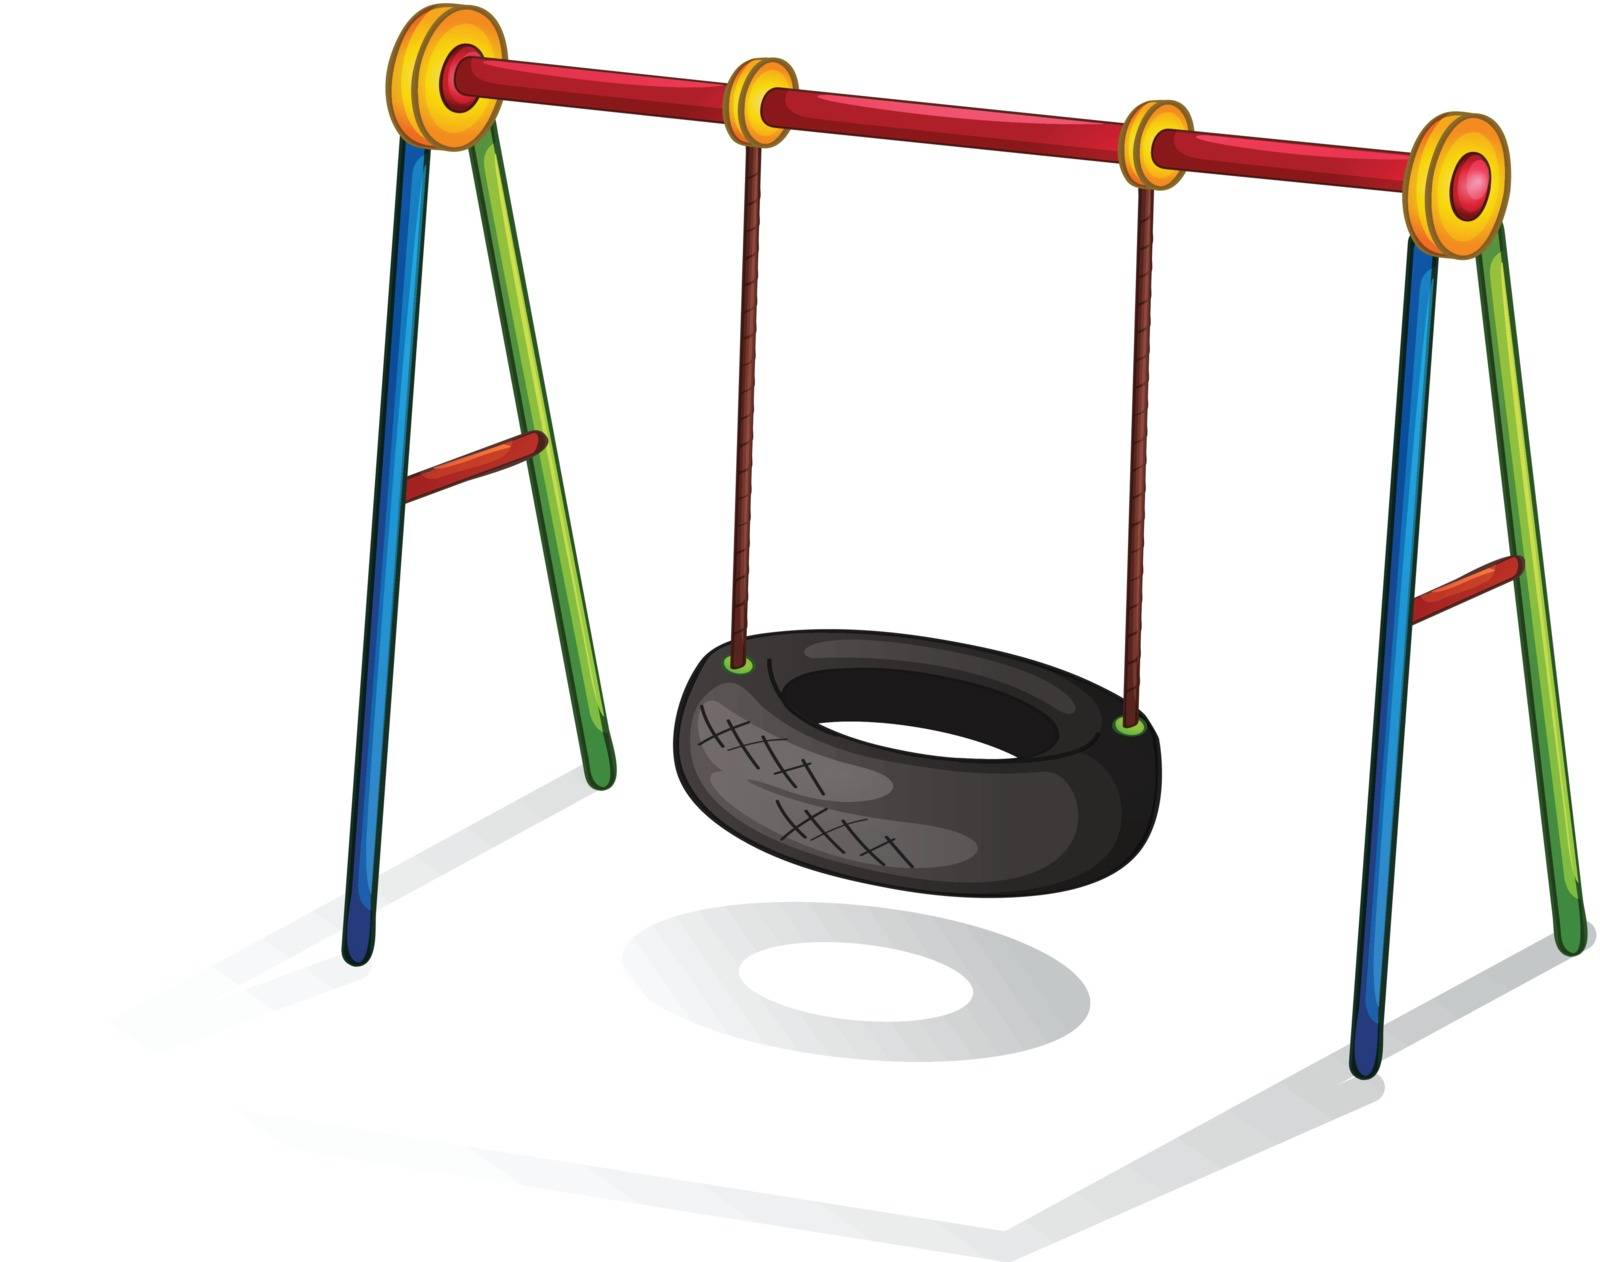 Isolated illustration of play equipment - tire swing